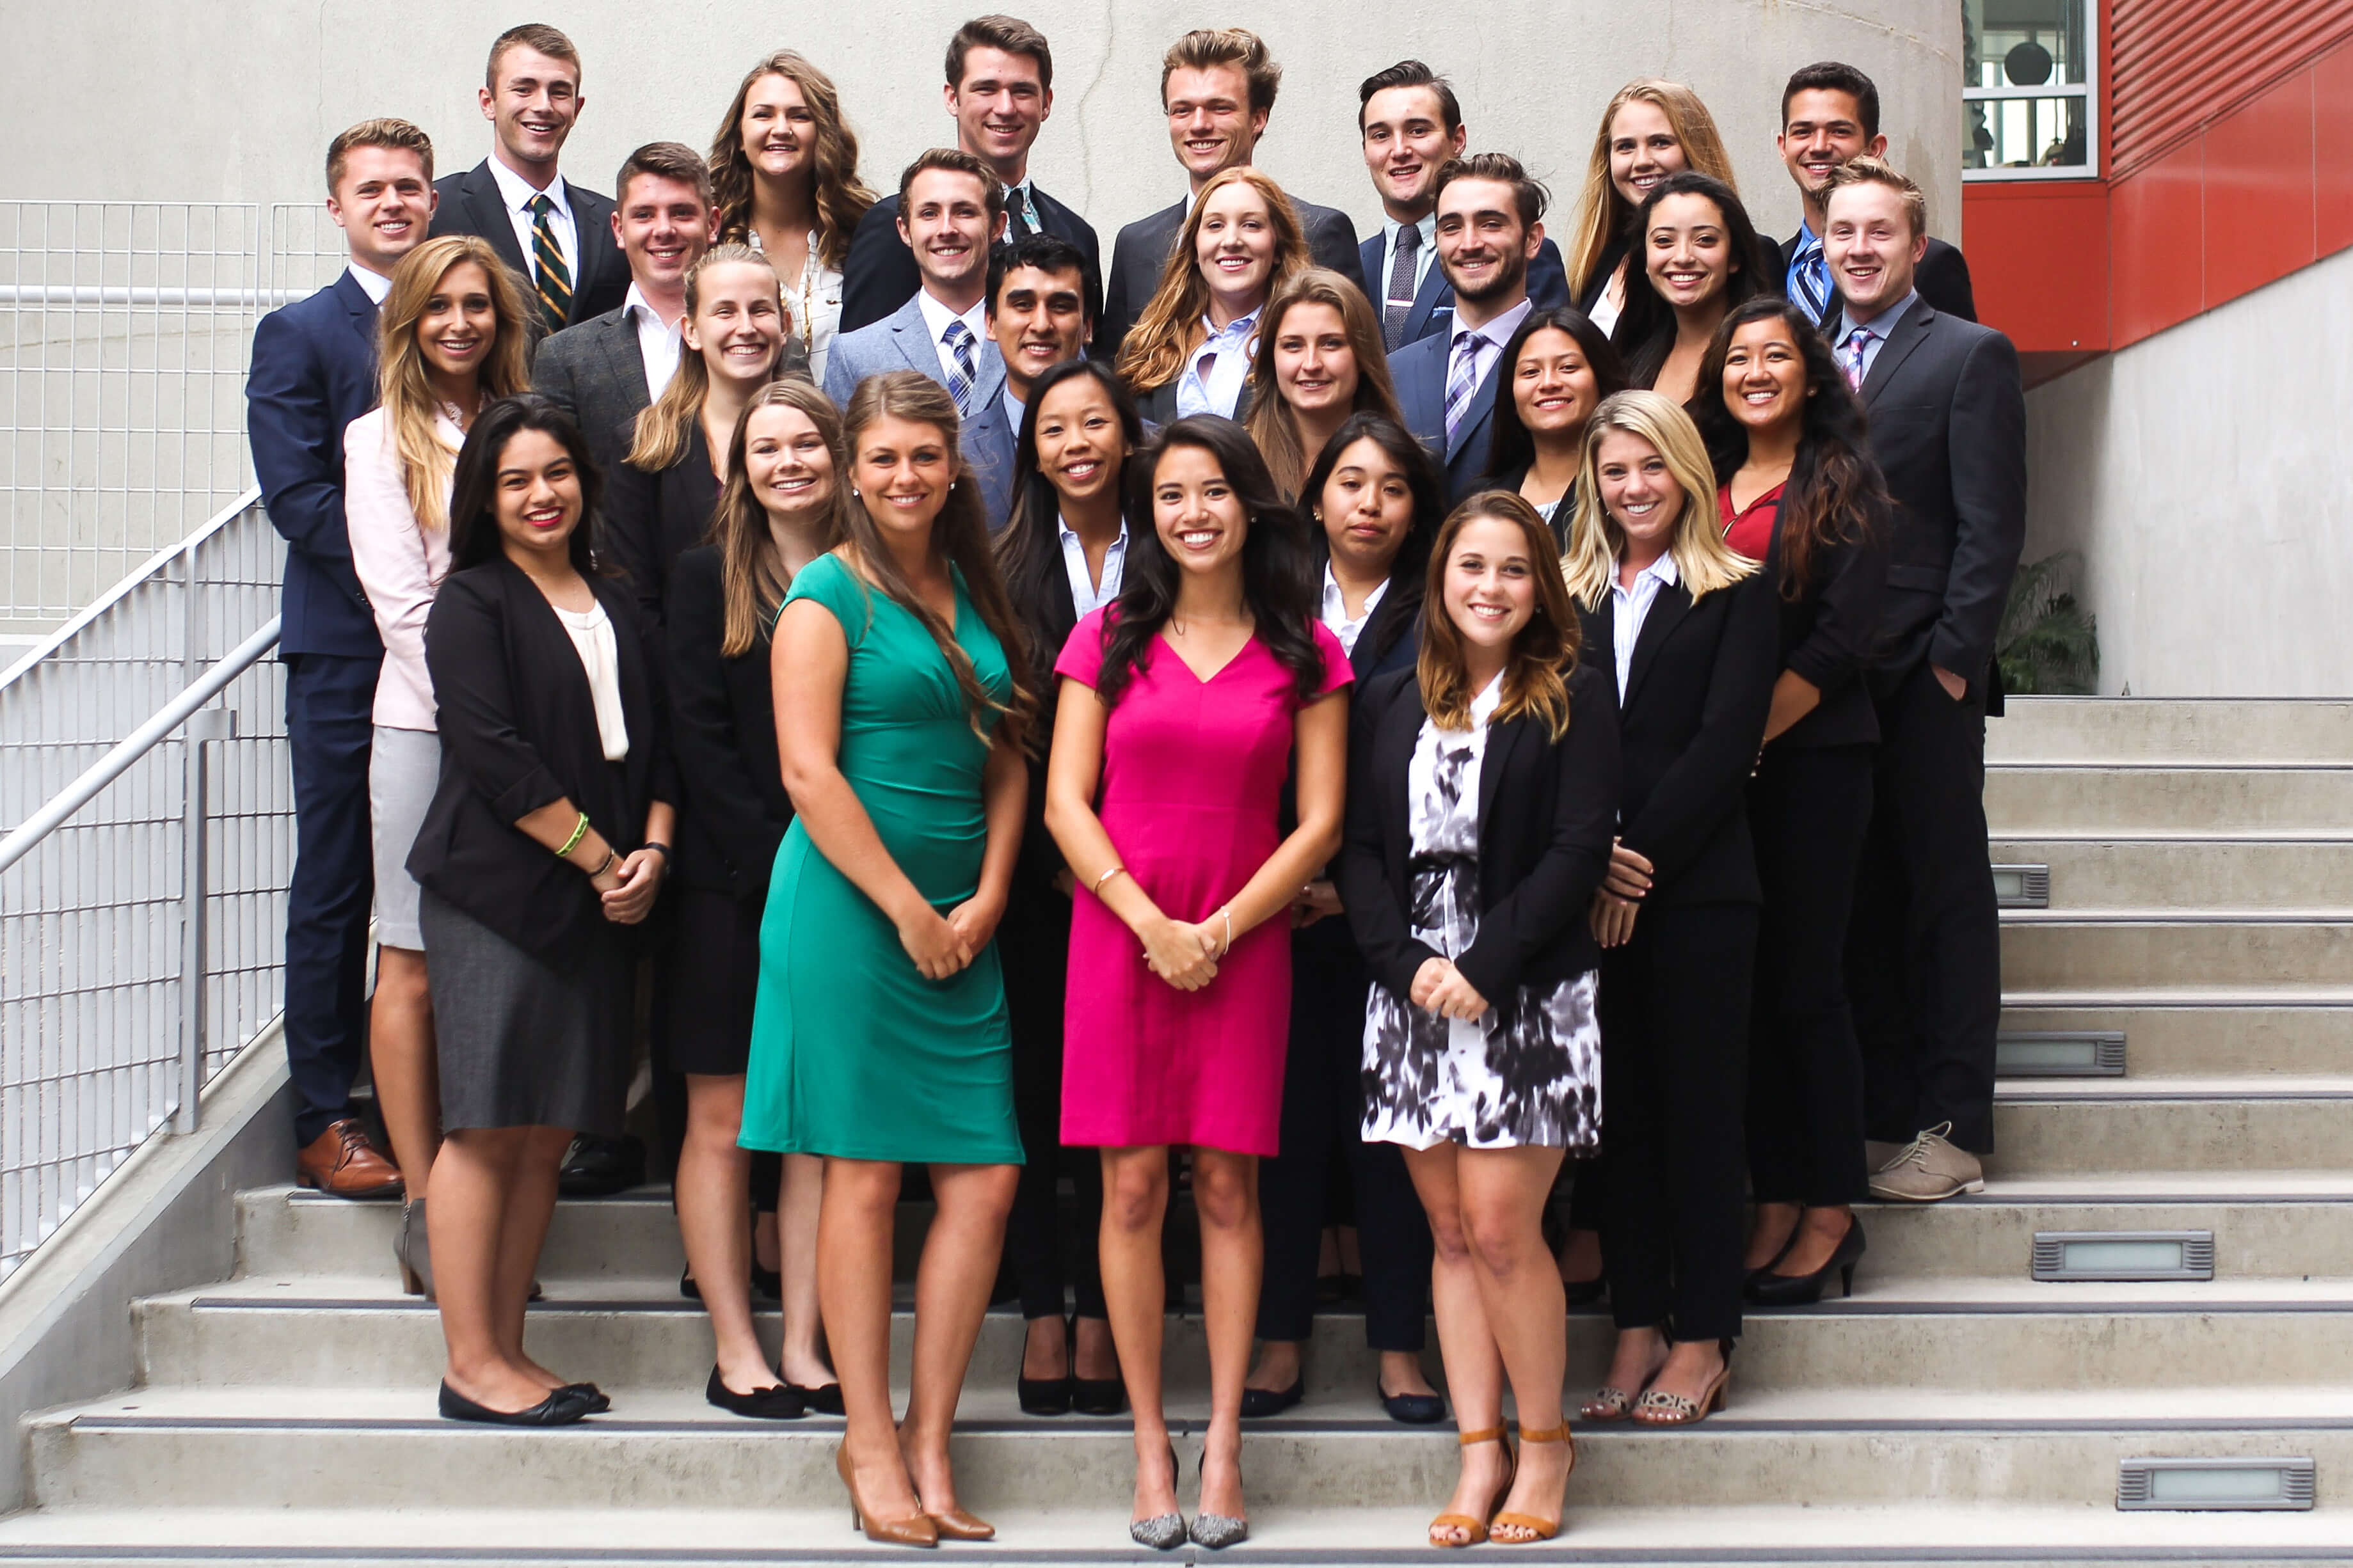 Group photo of the ASI Board of Directors on the steps of the Cal Poly Recreation Center